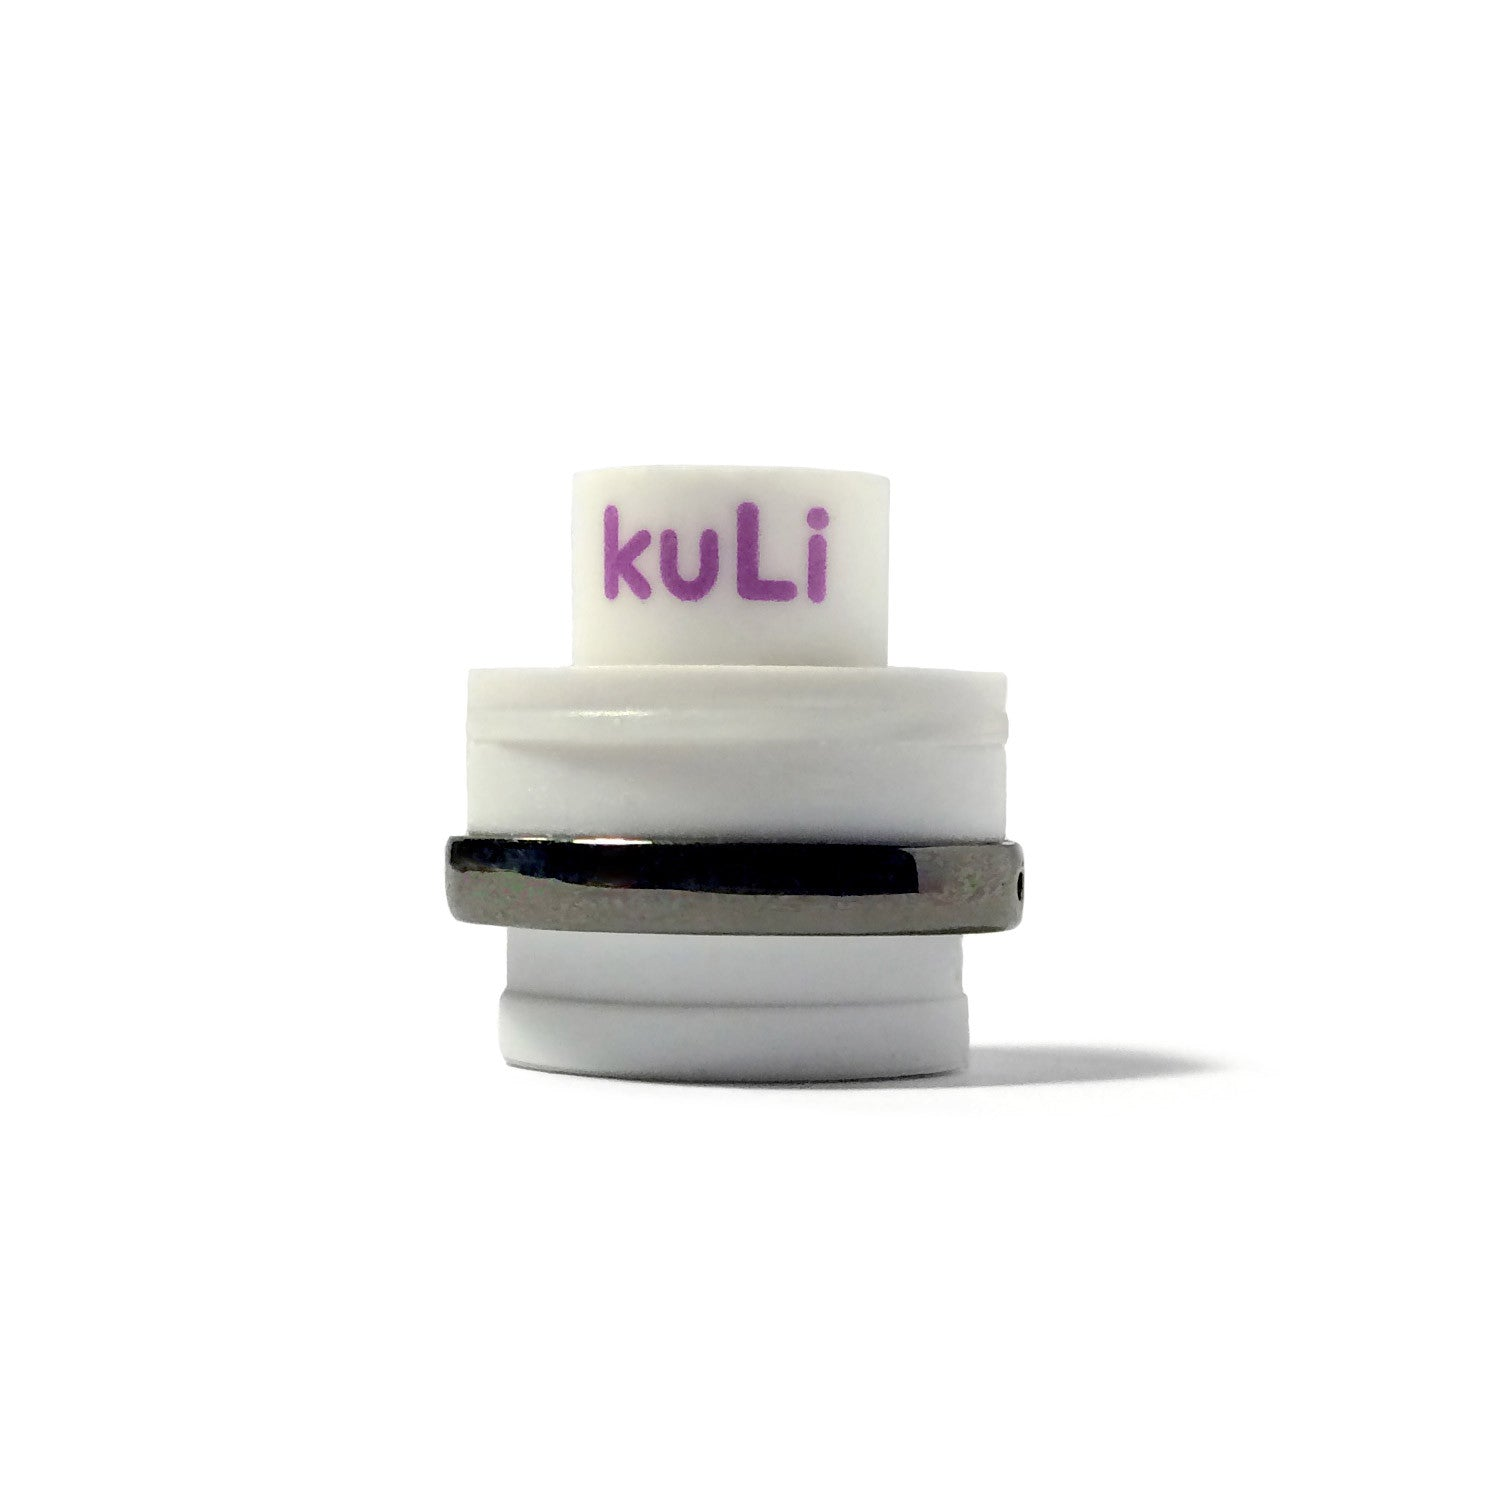 kuLi kit - purpLe and yellow